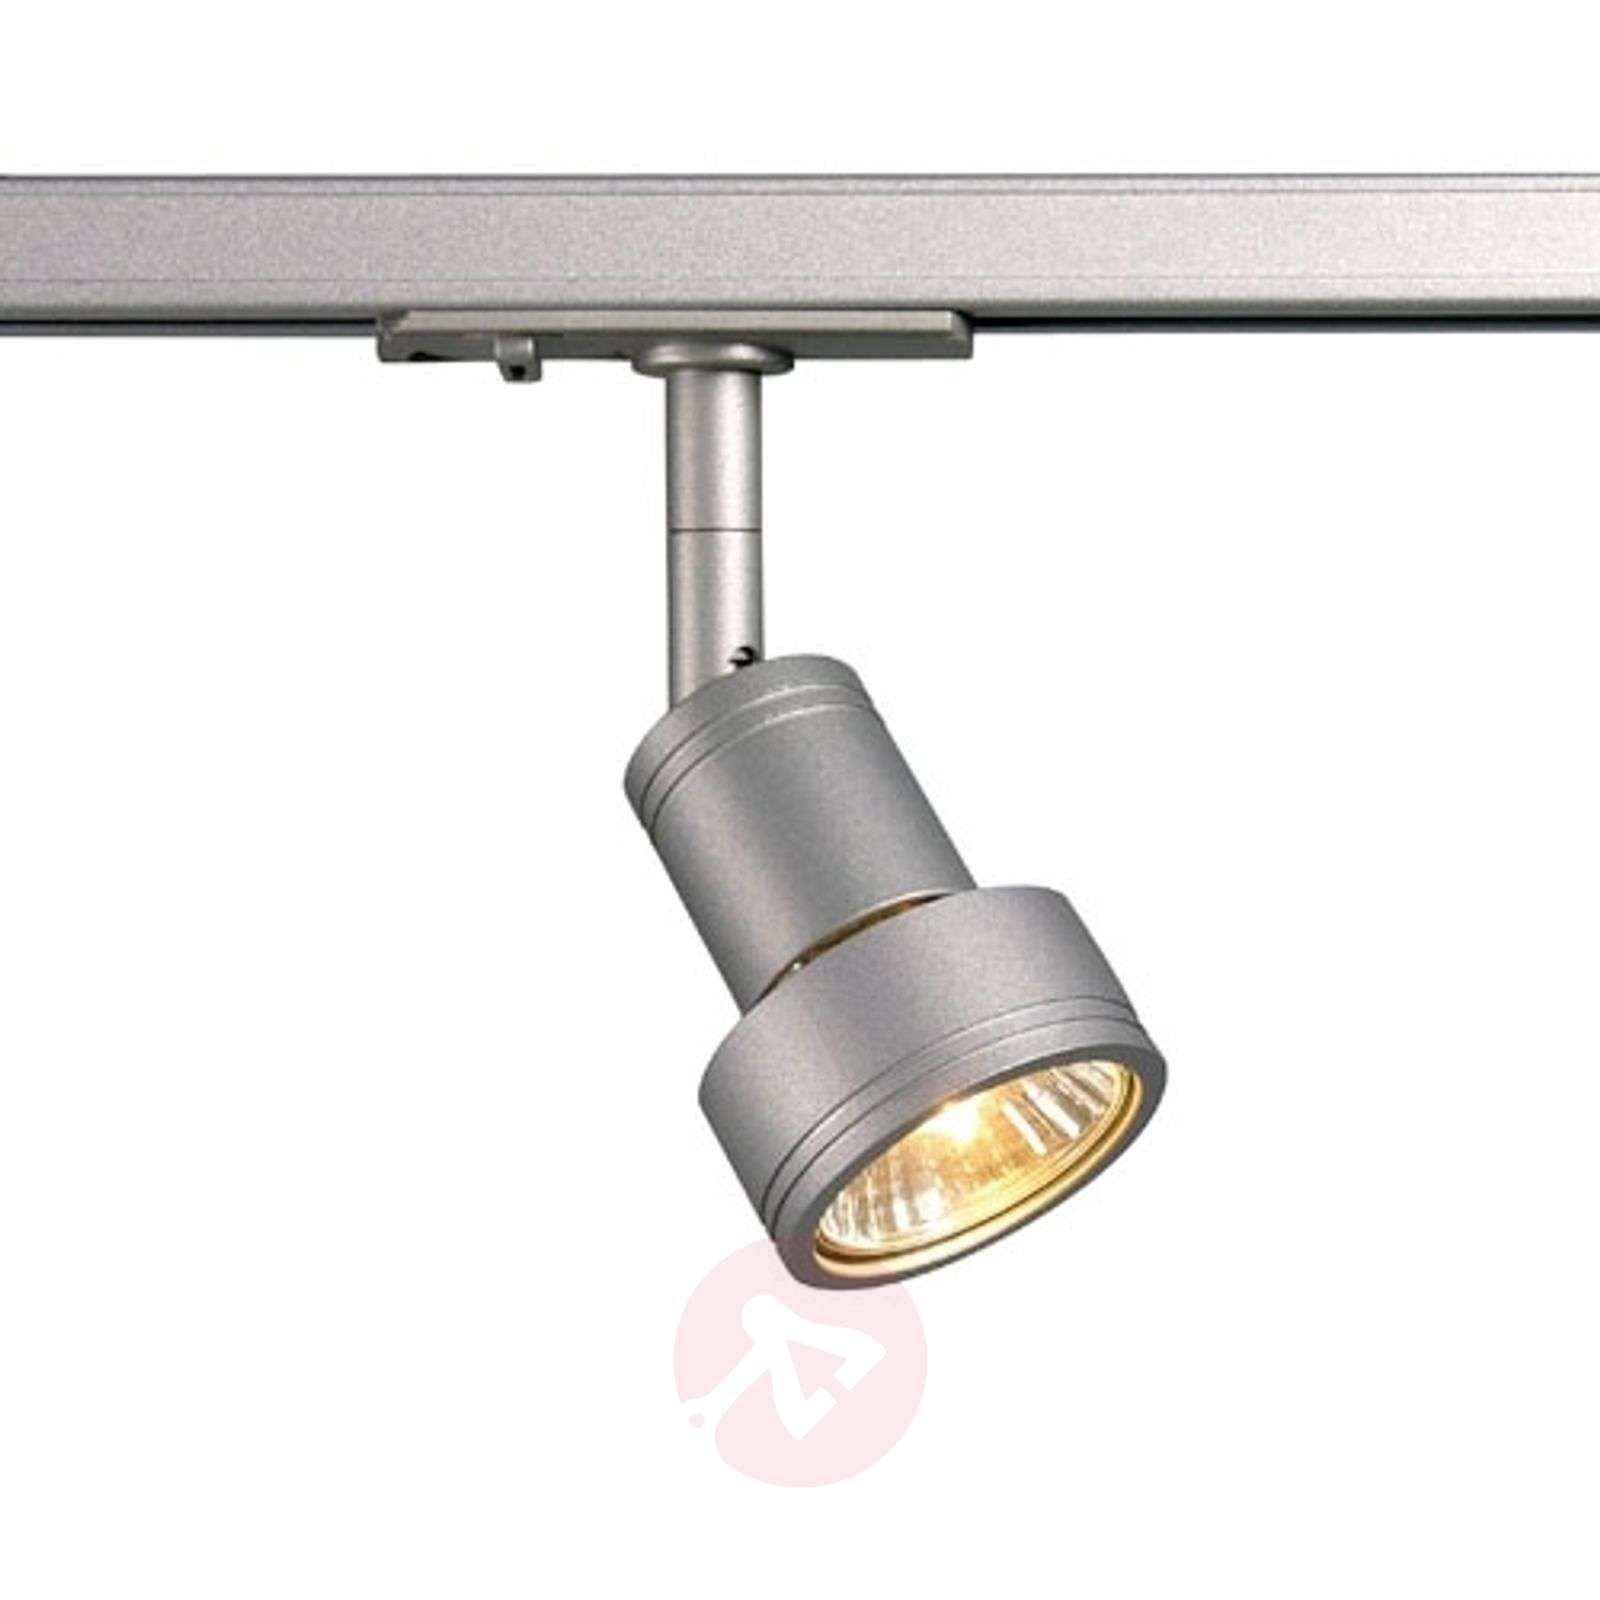 Track Lighting Spotlights Throughout Puri Spotlight For Singlephase Track Light 50 W550325401 Lightscouk